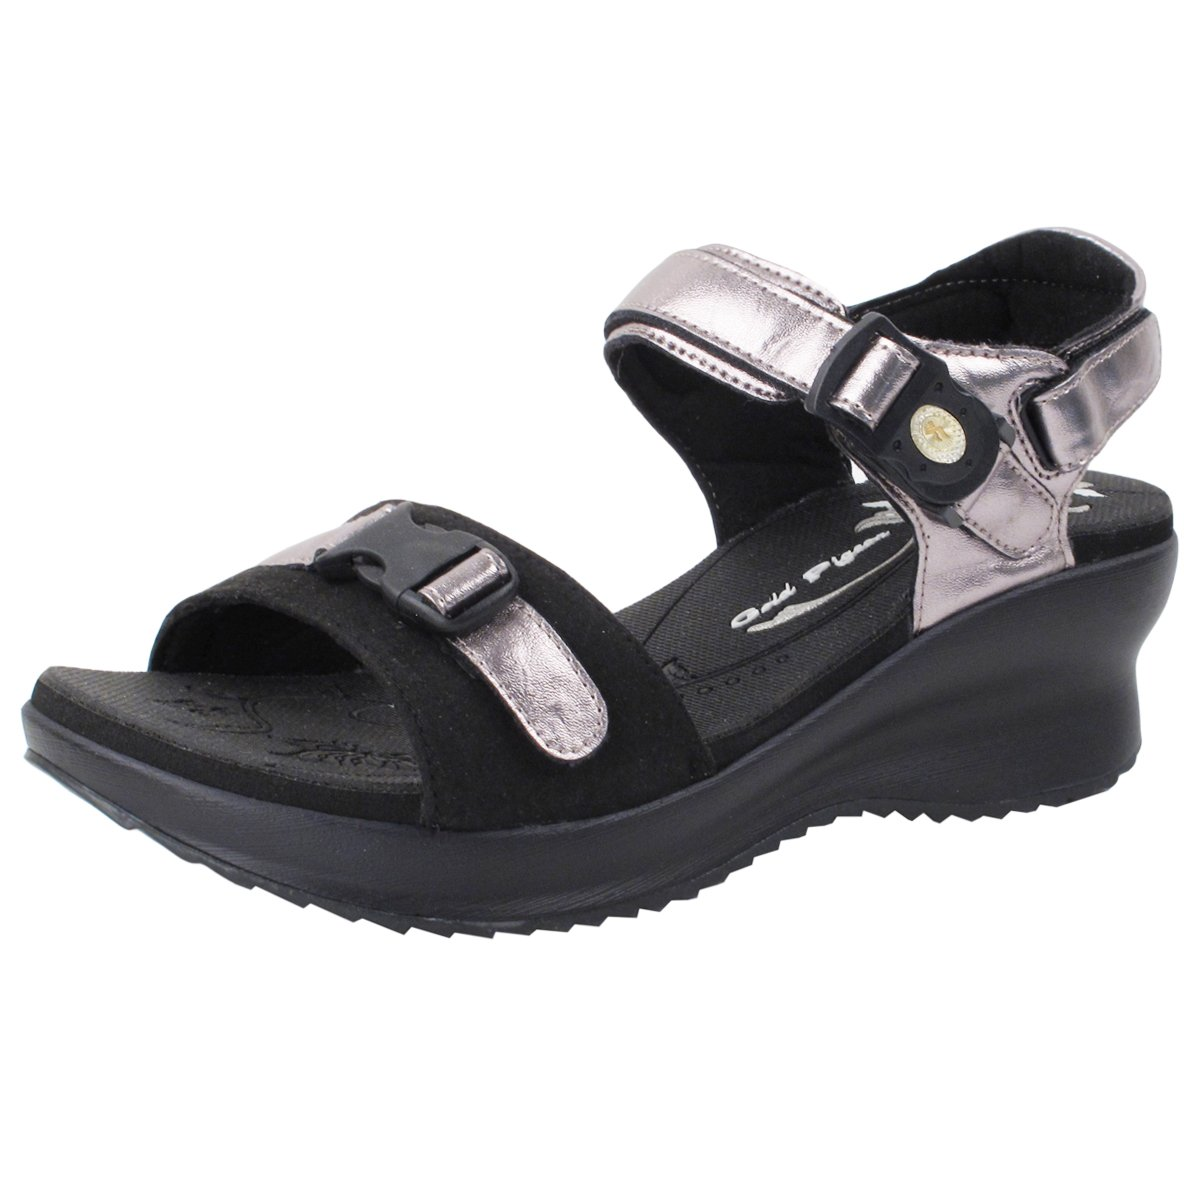 Gold Pigeon GP5974W (Size 4.5-8) Easy Magnetic Snap Lock Closure Light Weight Comfort Platform Sandals (Size 4.5-8) B07BC6RPYS EU37: US 6/6.5|Black Rose Gold